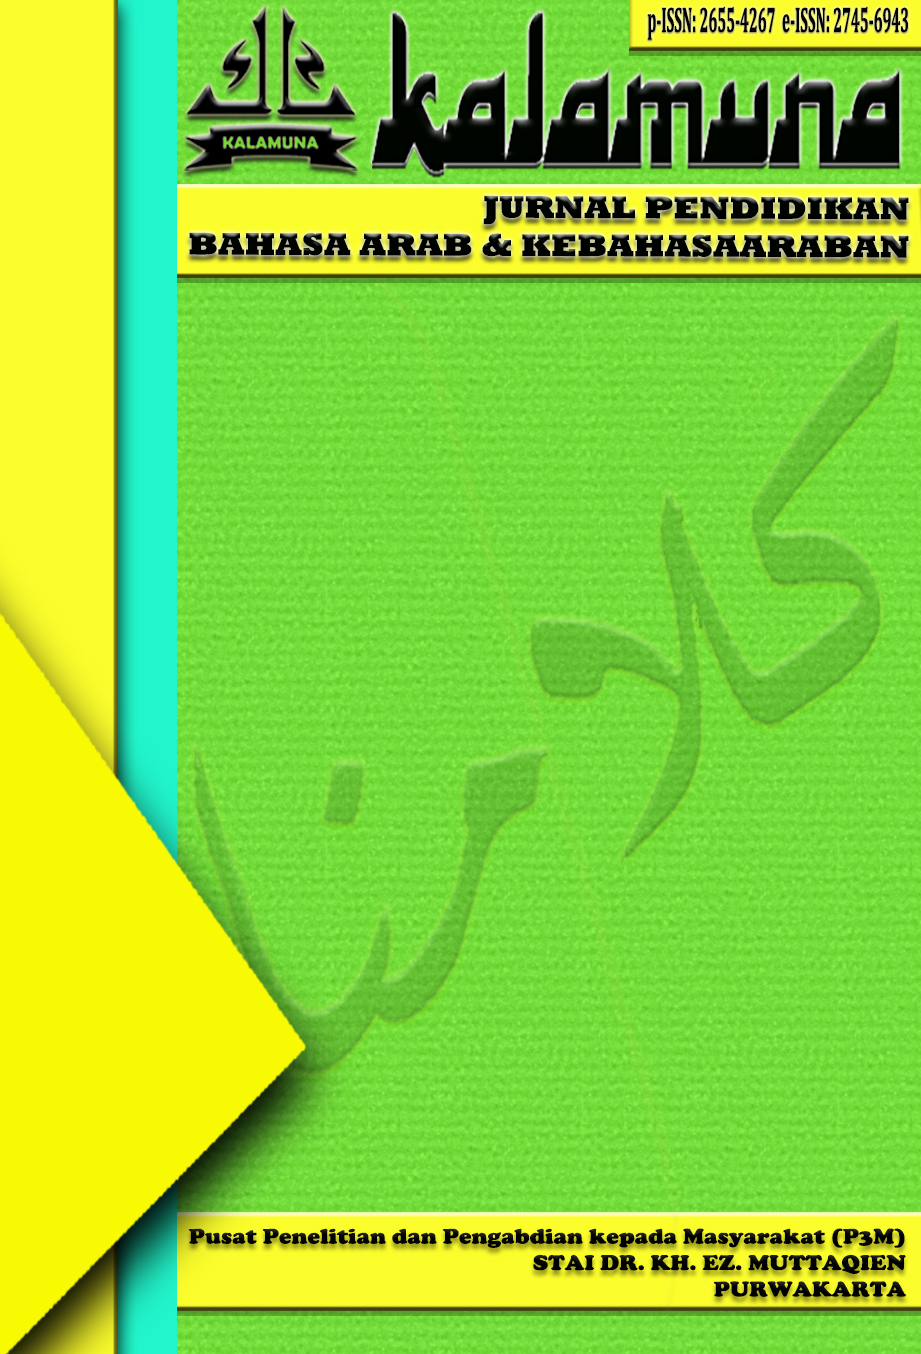 View Vol. 1 No. 1 (2020): Jurnal Pendidikan Bahasa Arab & Kebahasaaraban